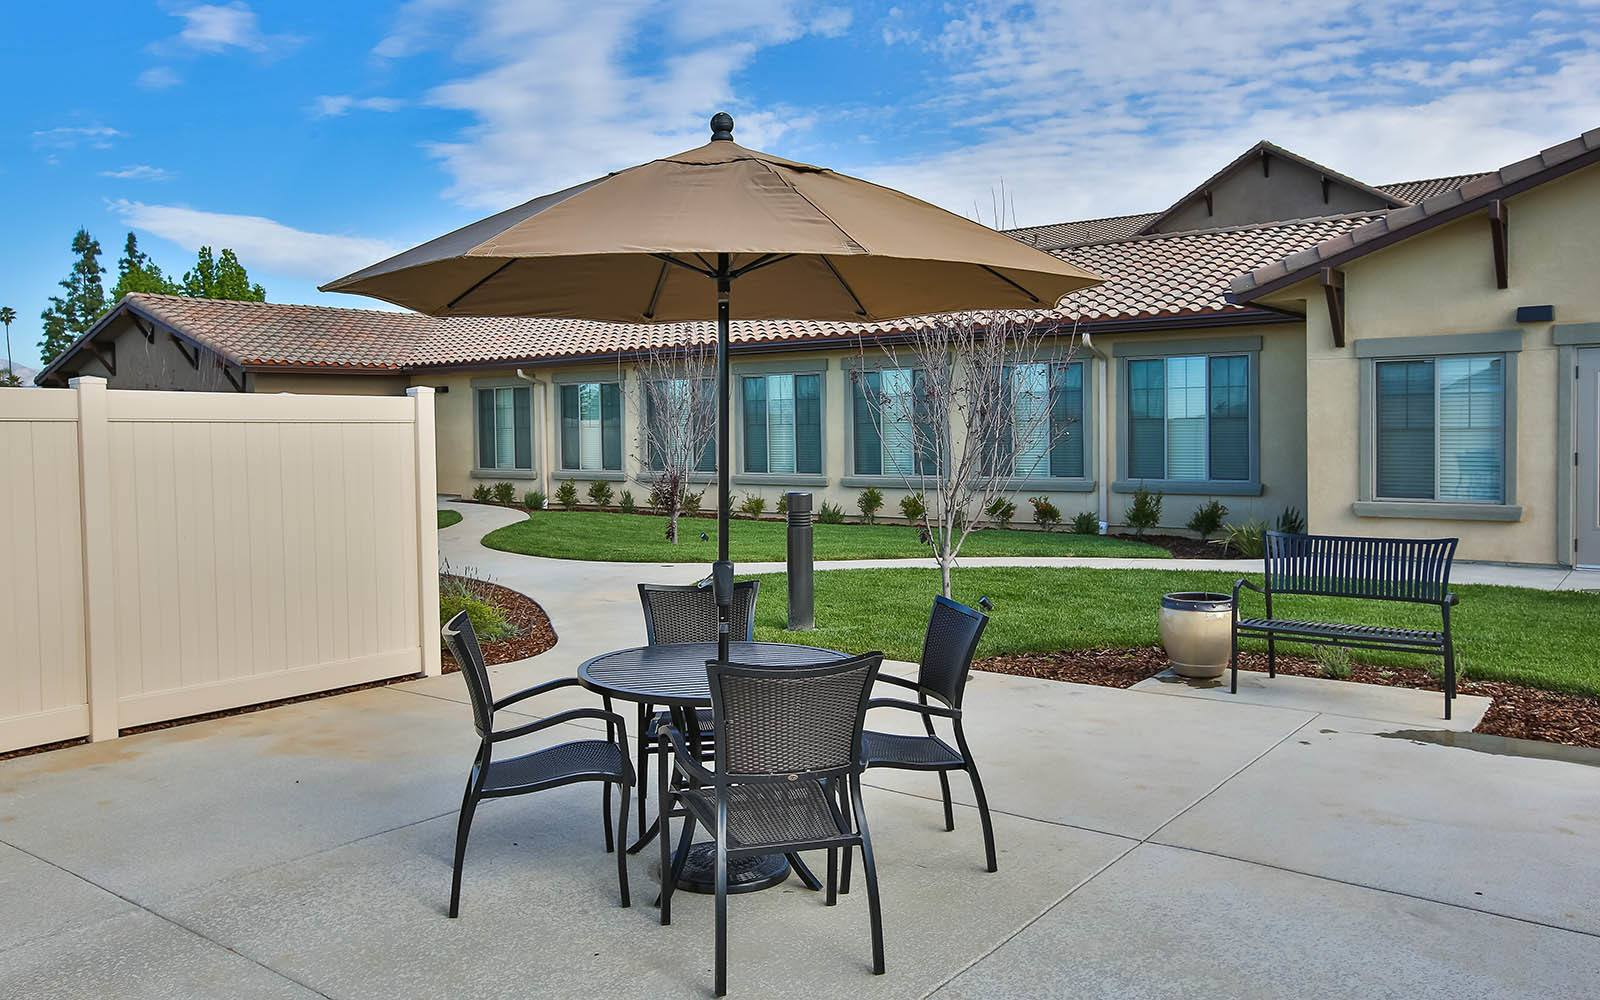 Patio Table With Umbrella at Brightwater Senior Living of Highland in Highland, CA